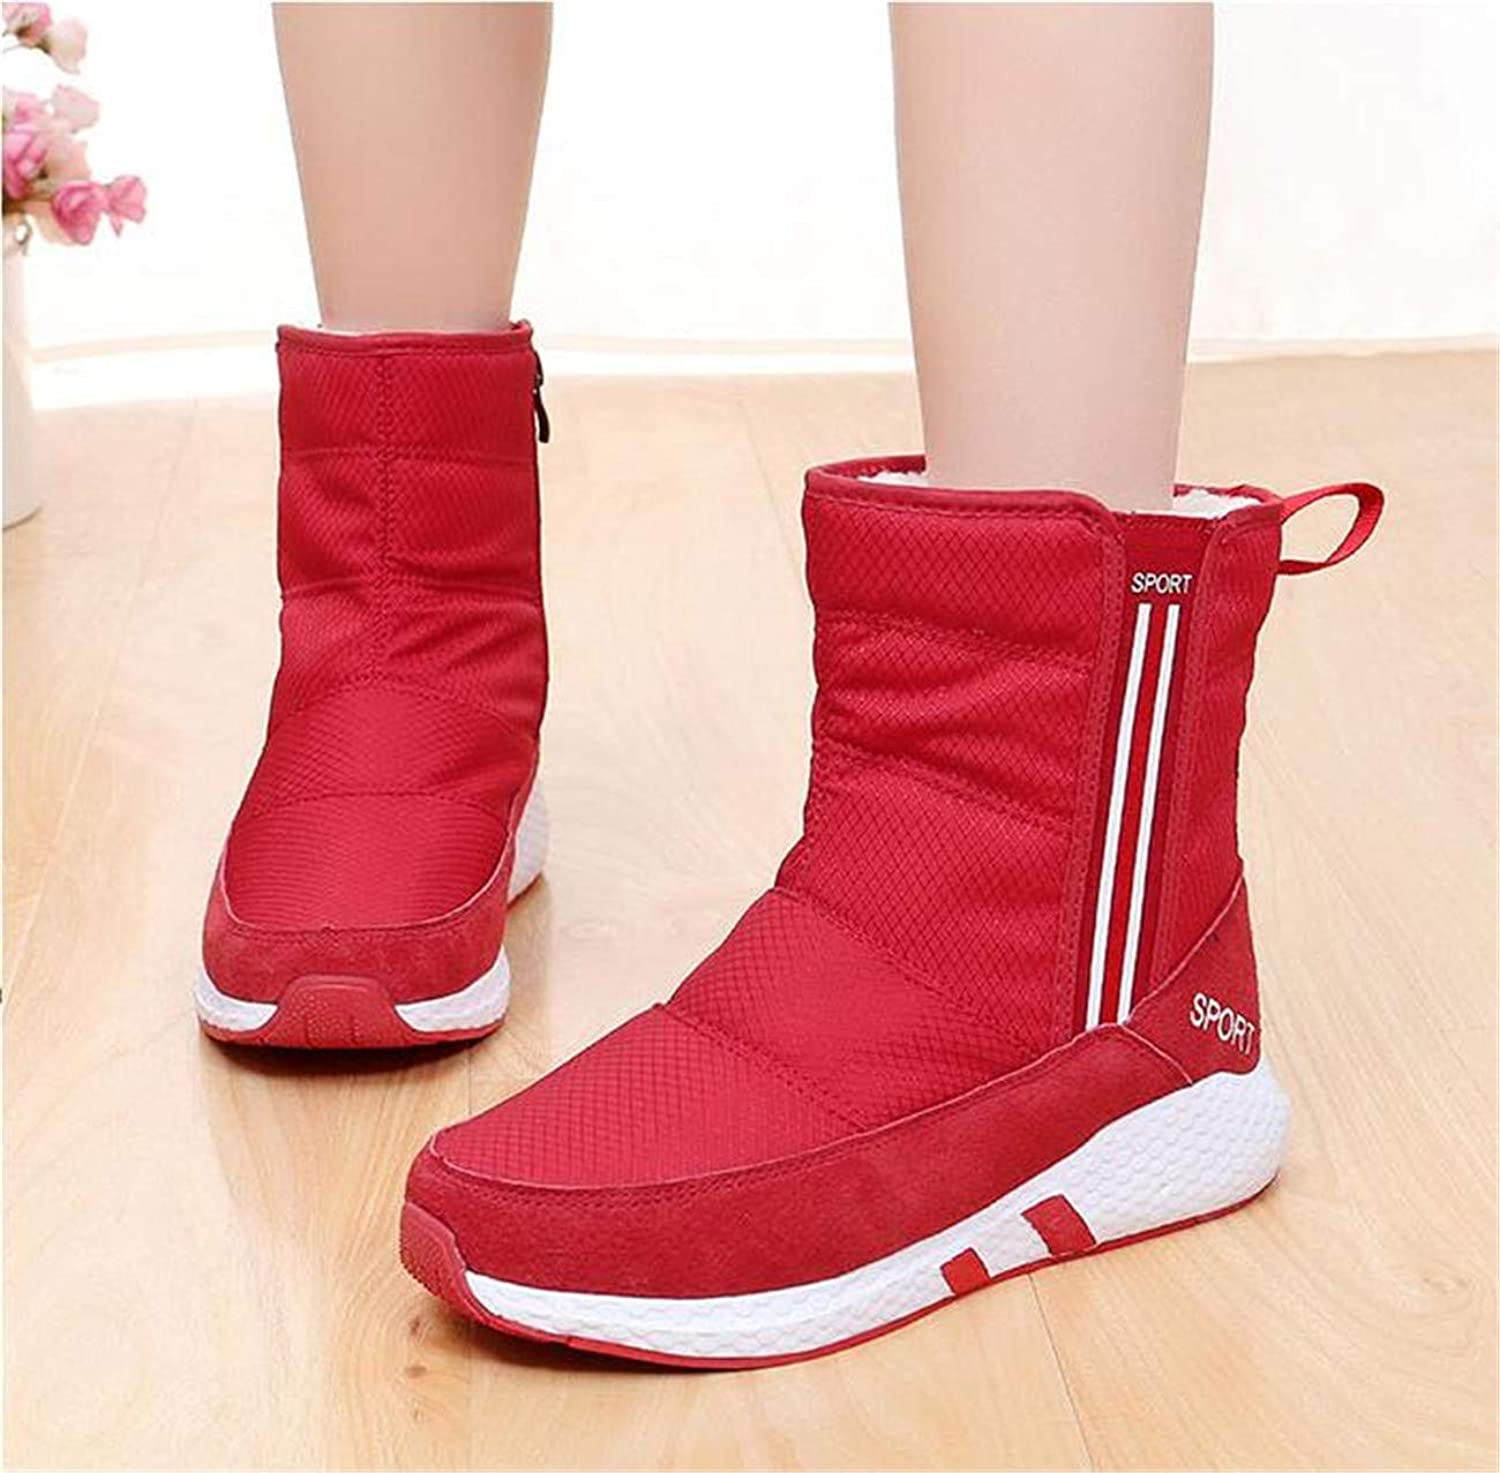 Sianaoi Cute Cat Warm Boots Women Family Christmas Cotton Winter shoes Women Boot Red